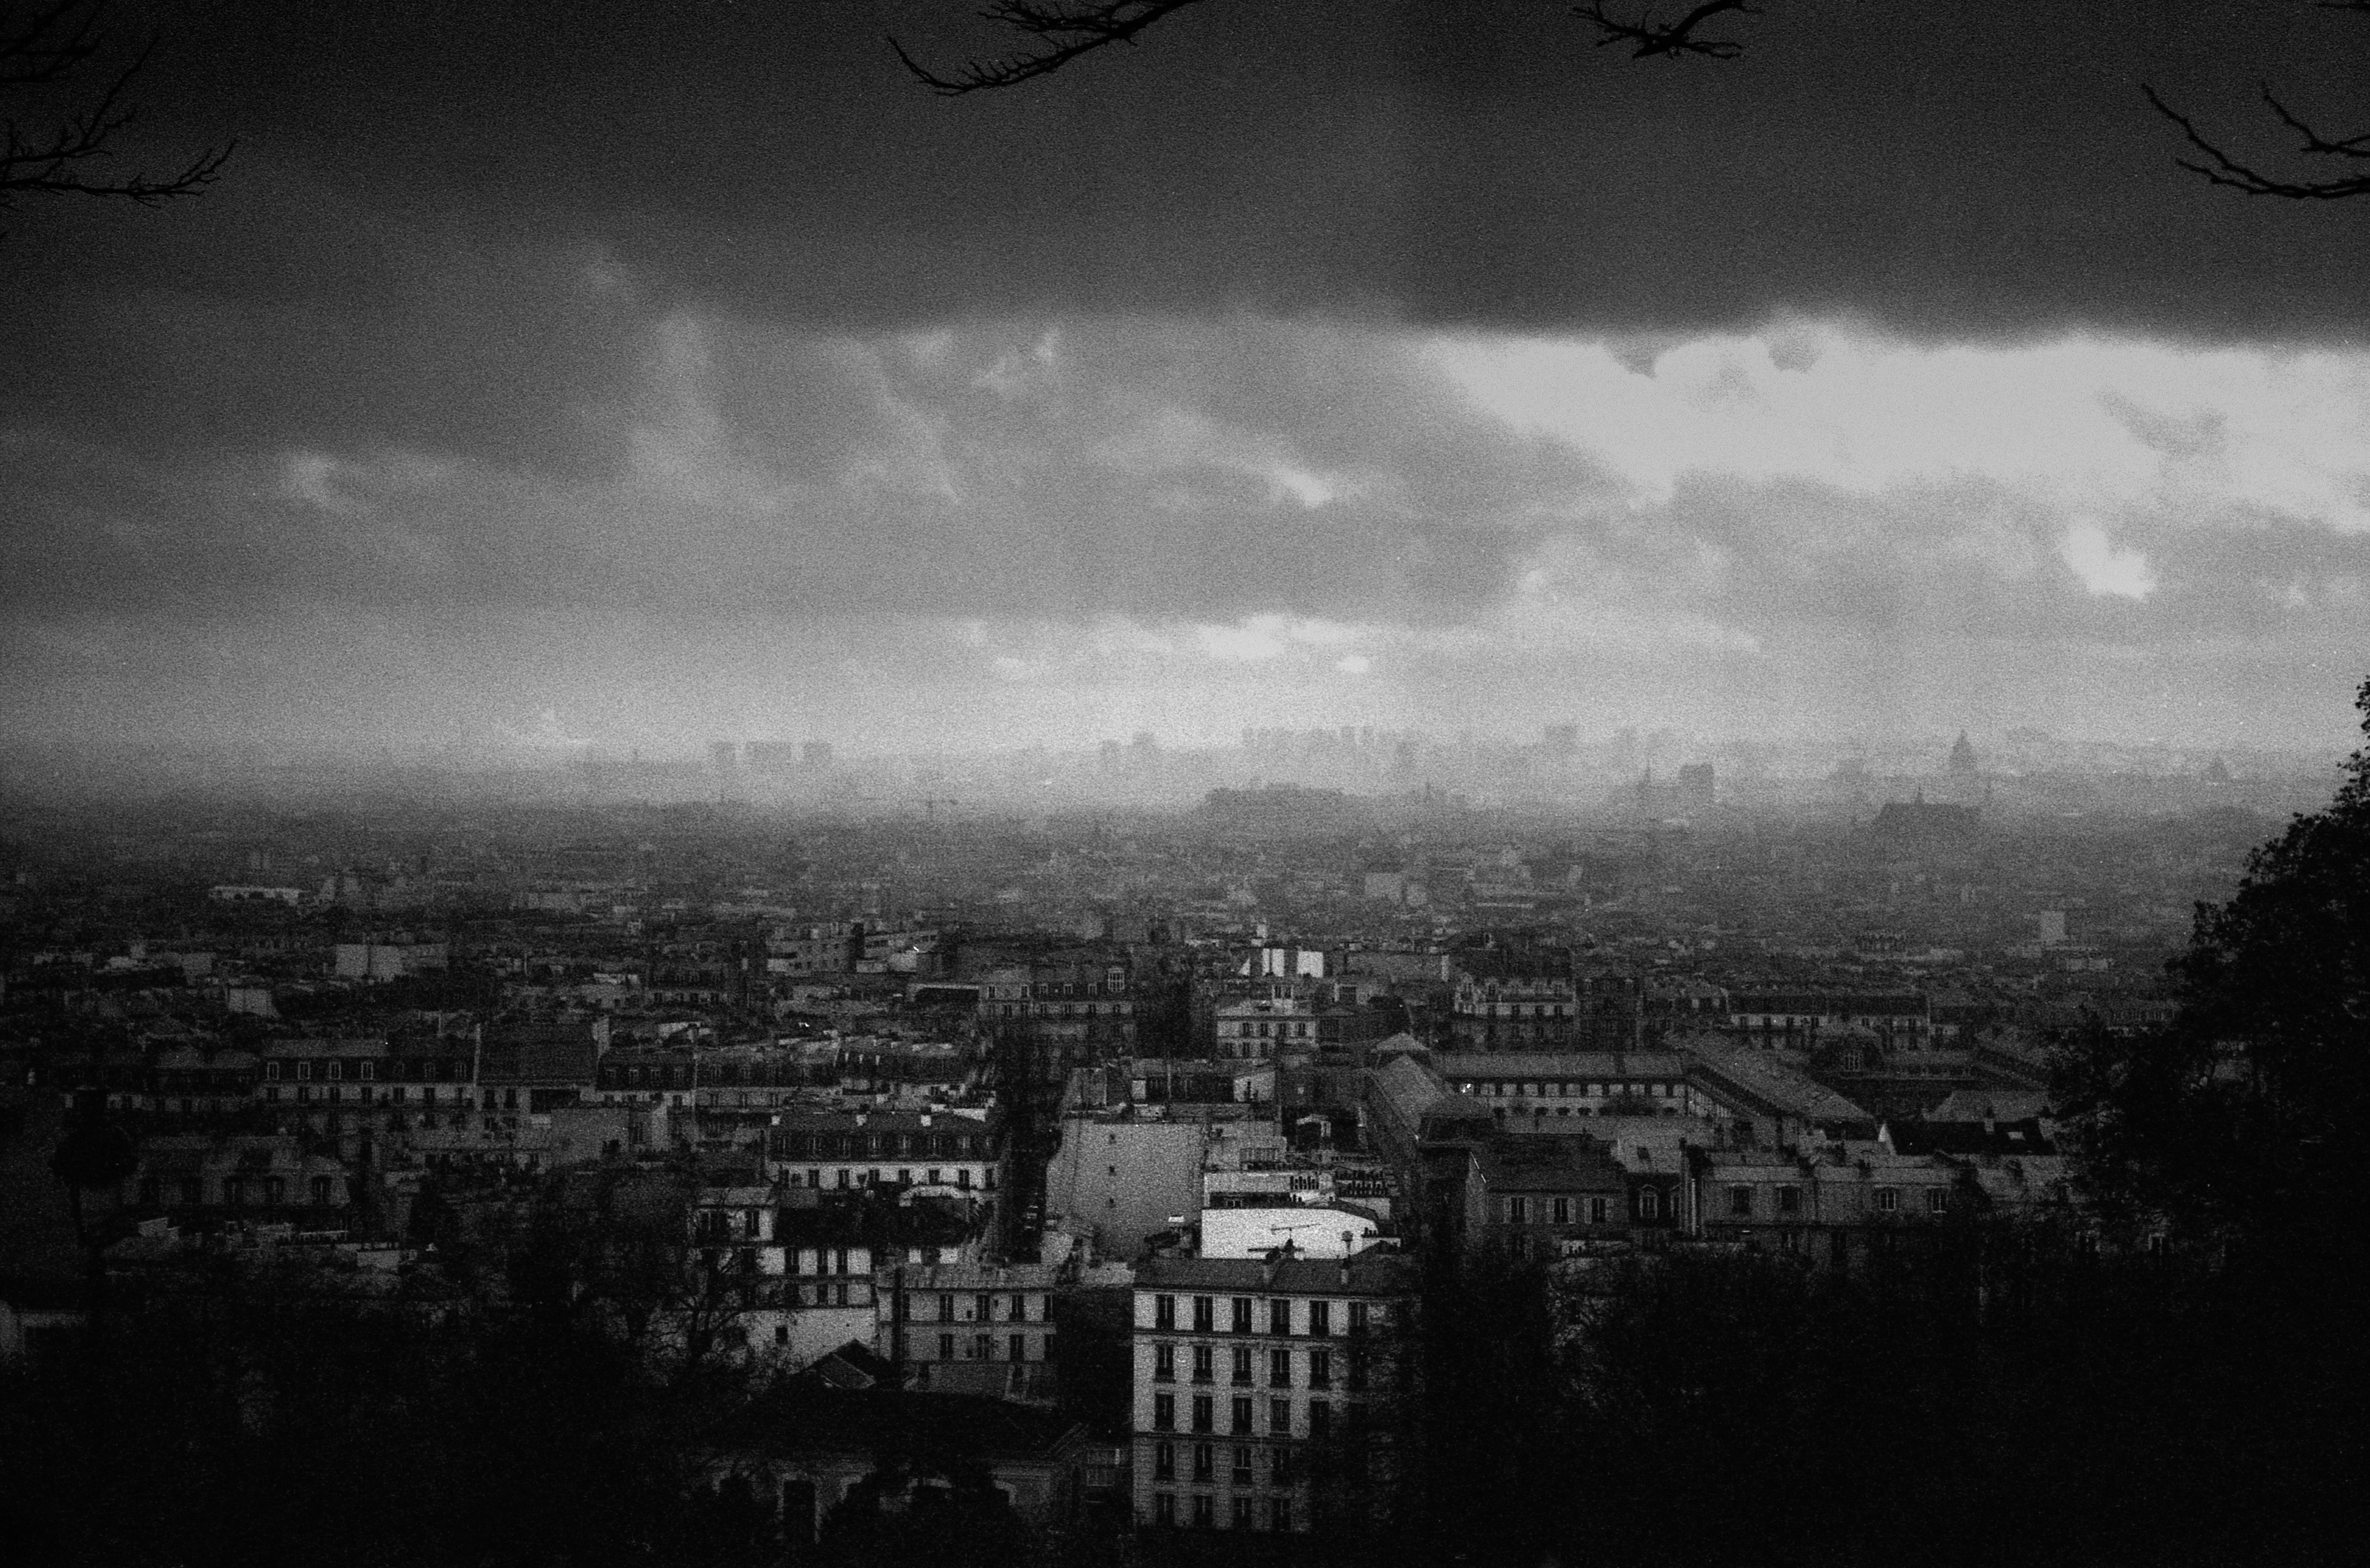 Black and white print of the city of Paris